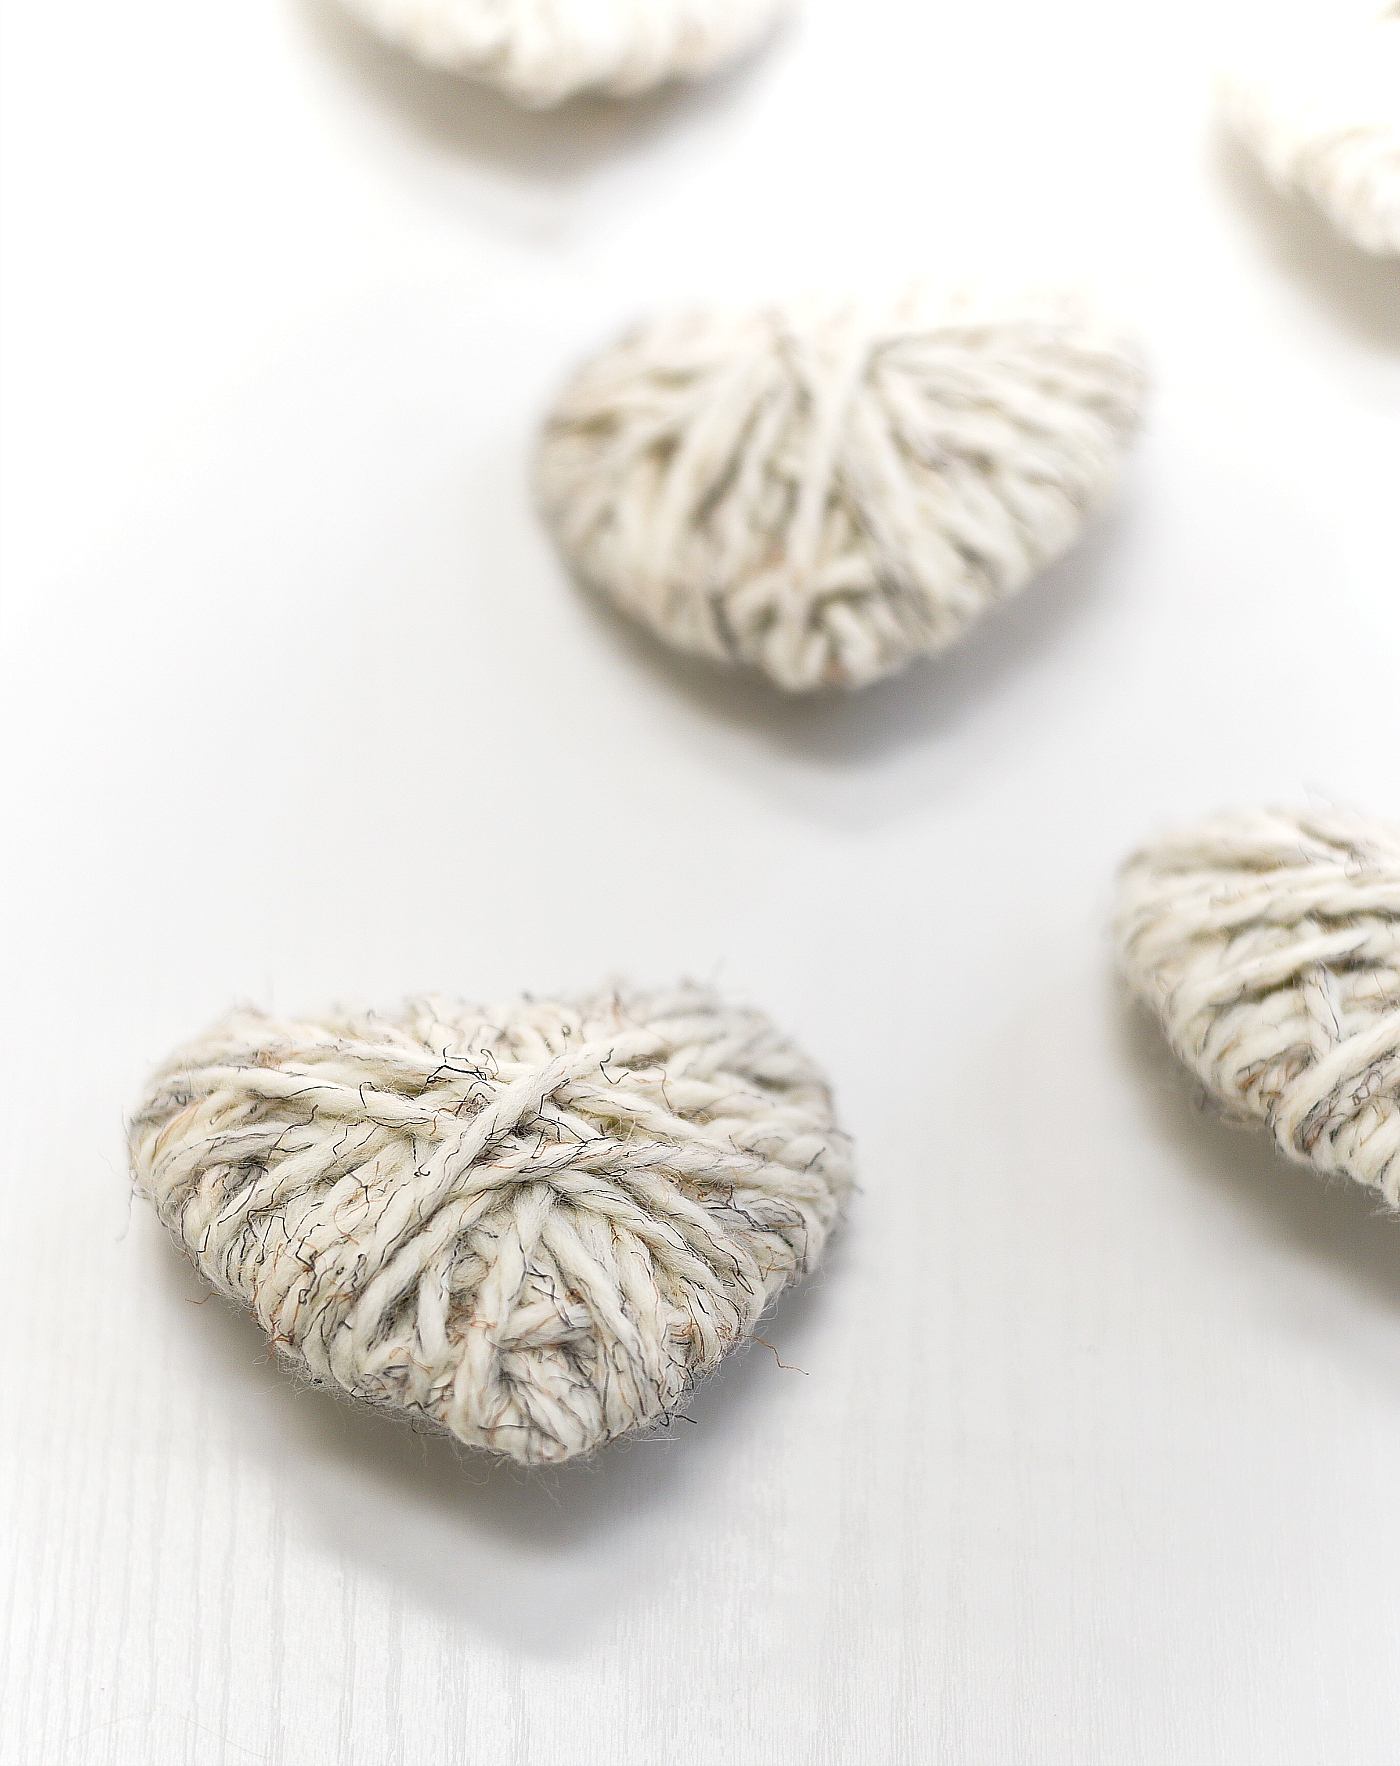 Yarn Wrapped Hearts - Valentine Day Craft Ideas